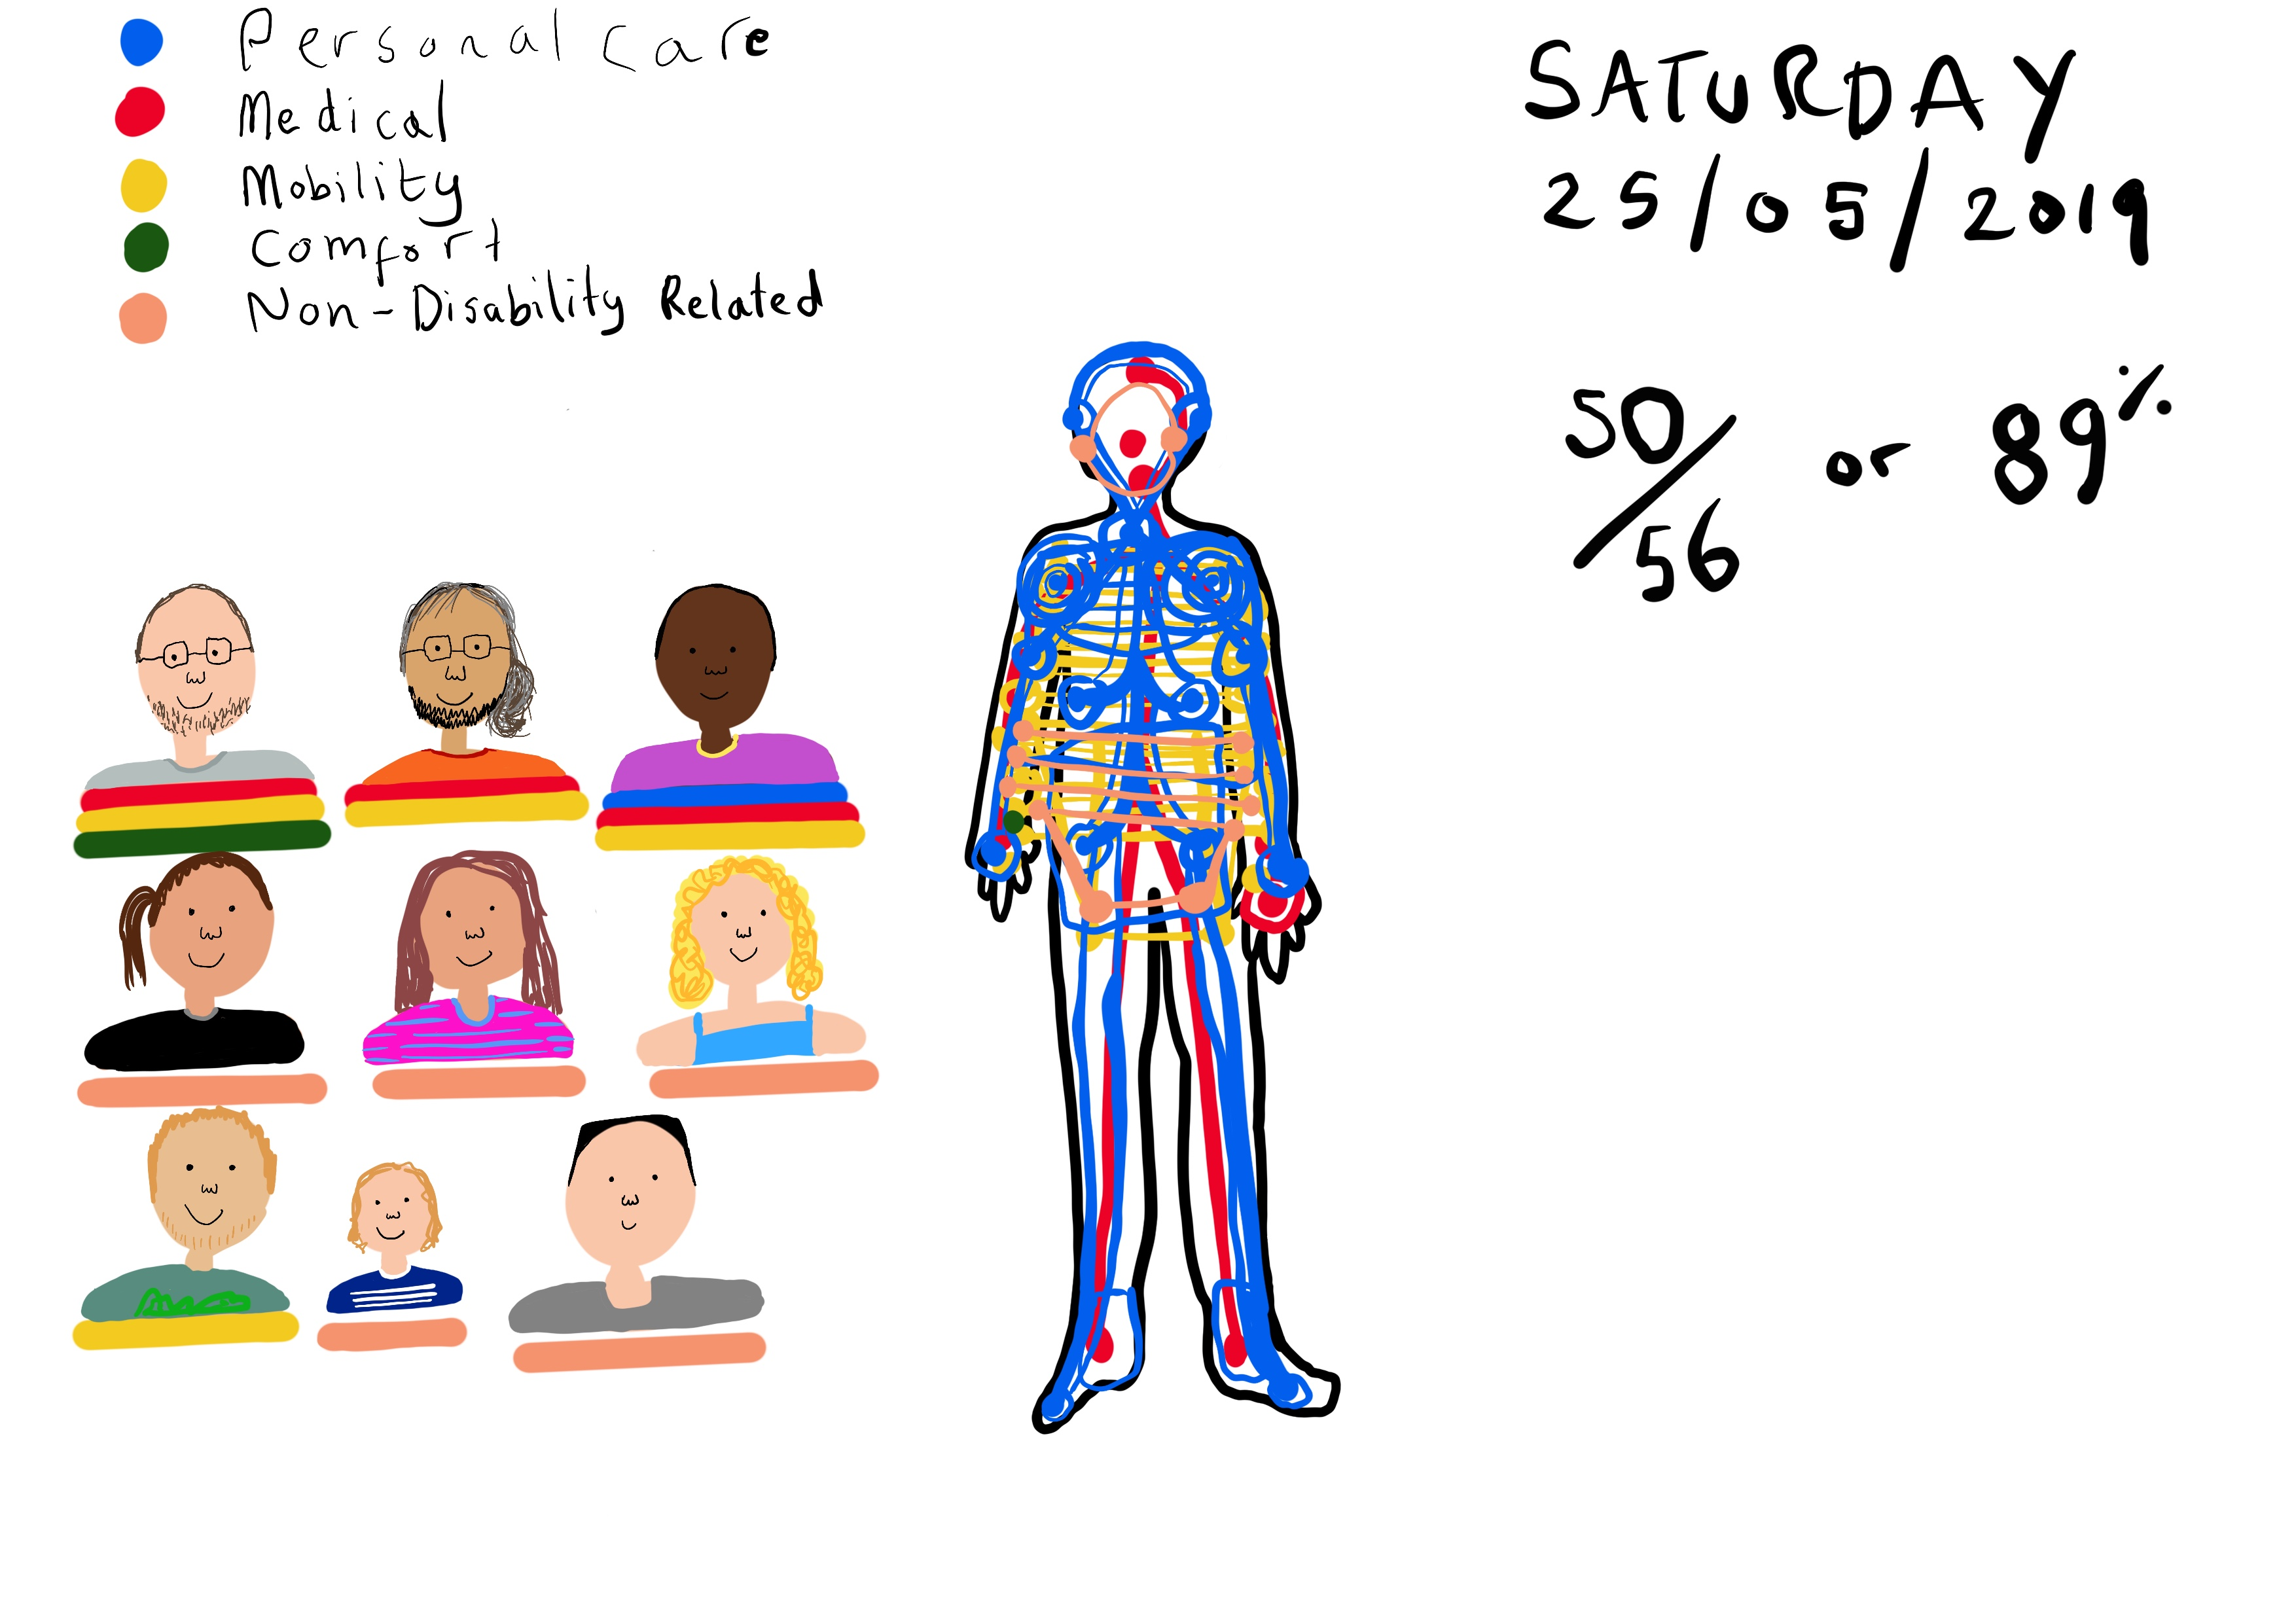 An illustration showing a colour coded body map showing different areas of touch for personal care, medical, mobility, comfort and non-disability related. A statistic if given for Saturday 25/05/2019 of 89%. There are also 9 illustrations of people Touretteshero was touched by on that day.